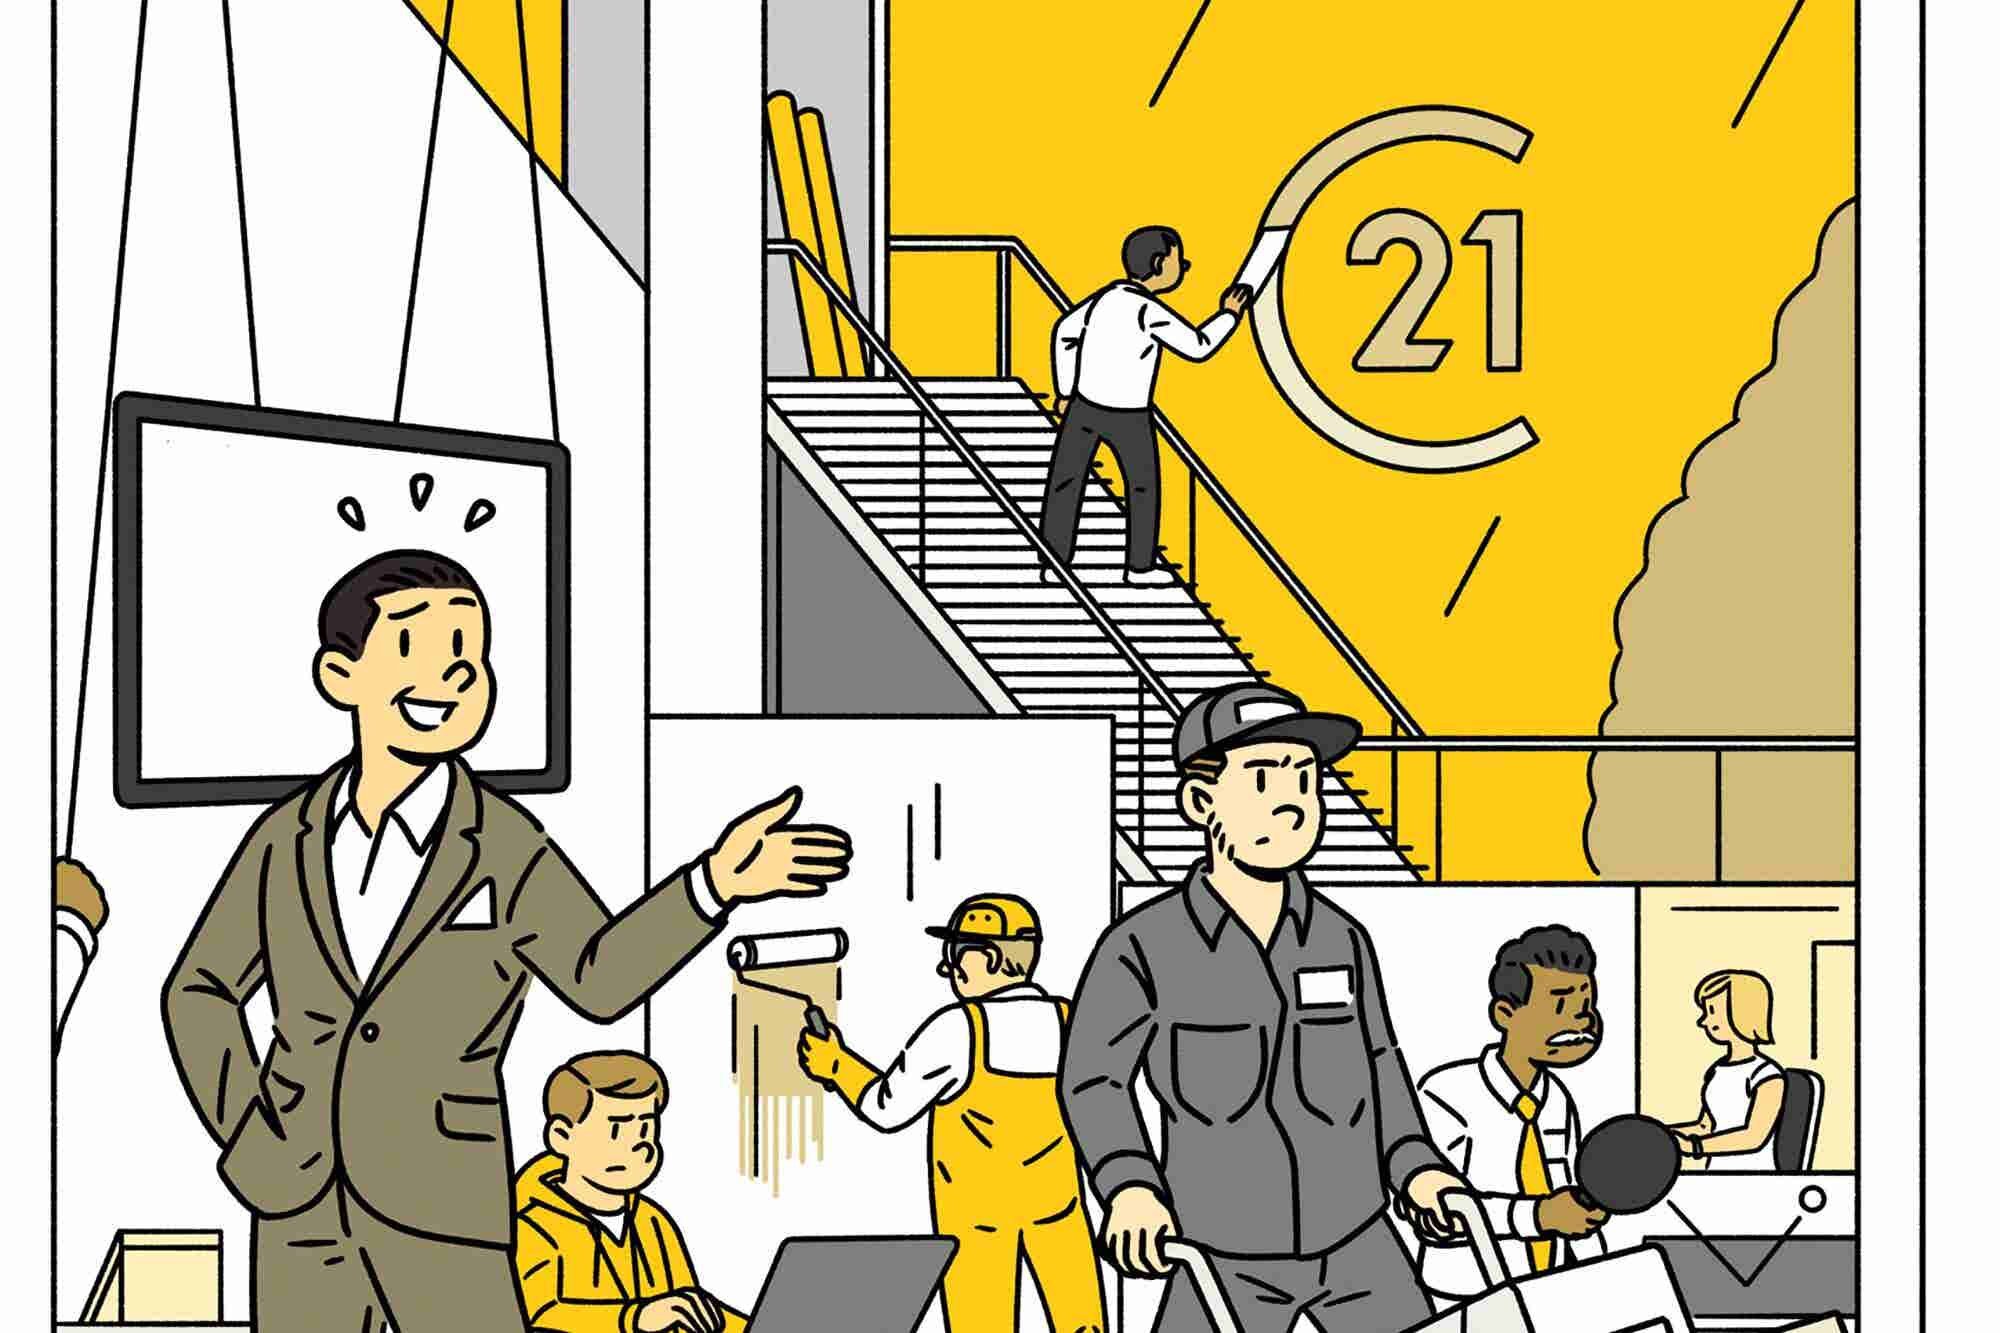 Old Company. Troubled Industry. Inside the Effort to Reboot Century 21, the Real Estate Giant